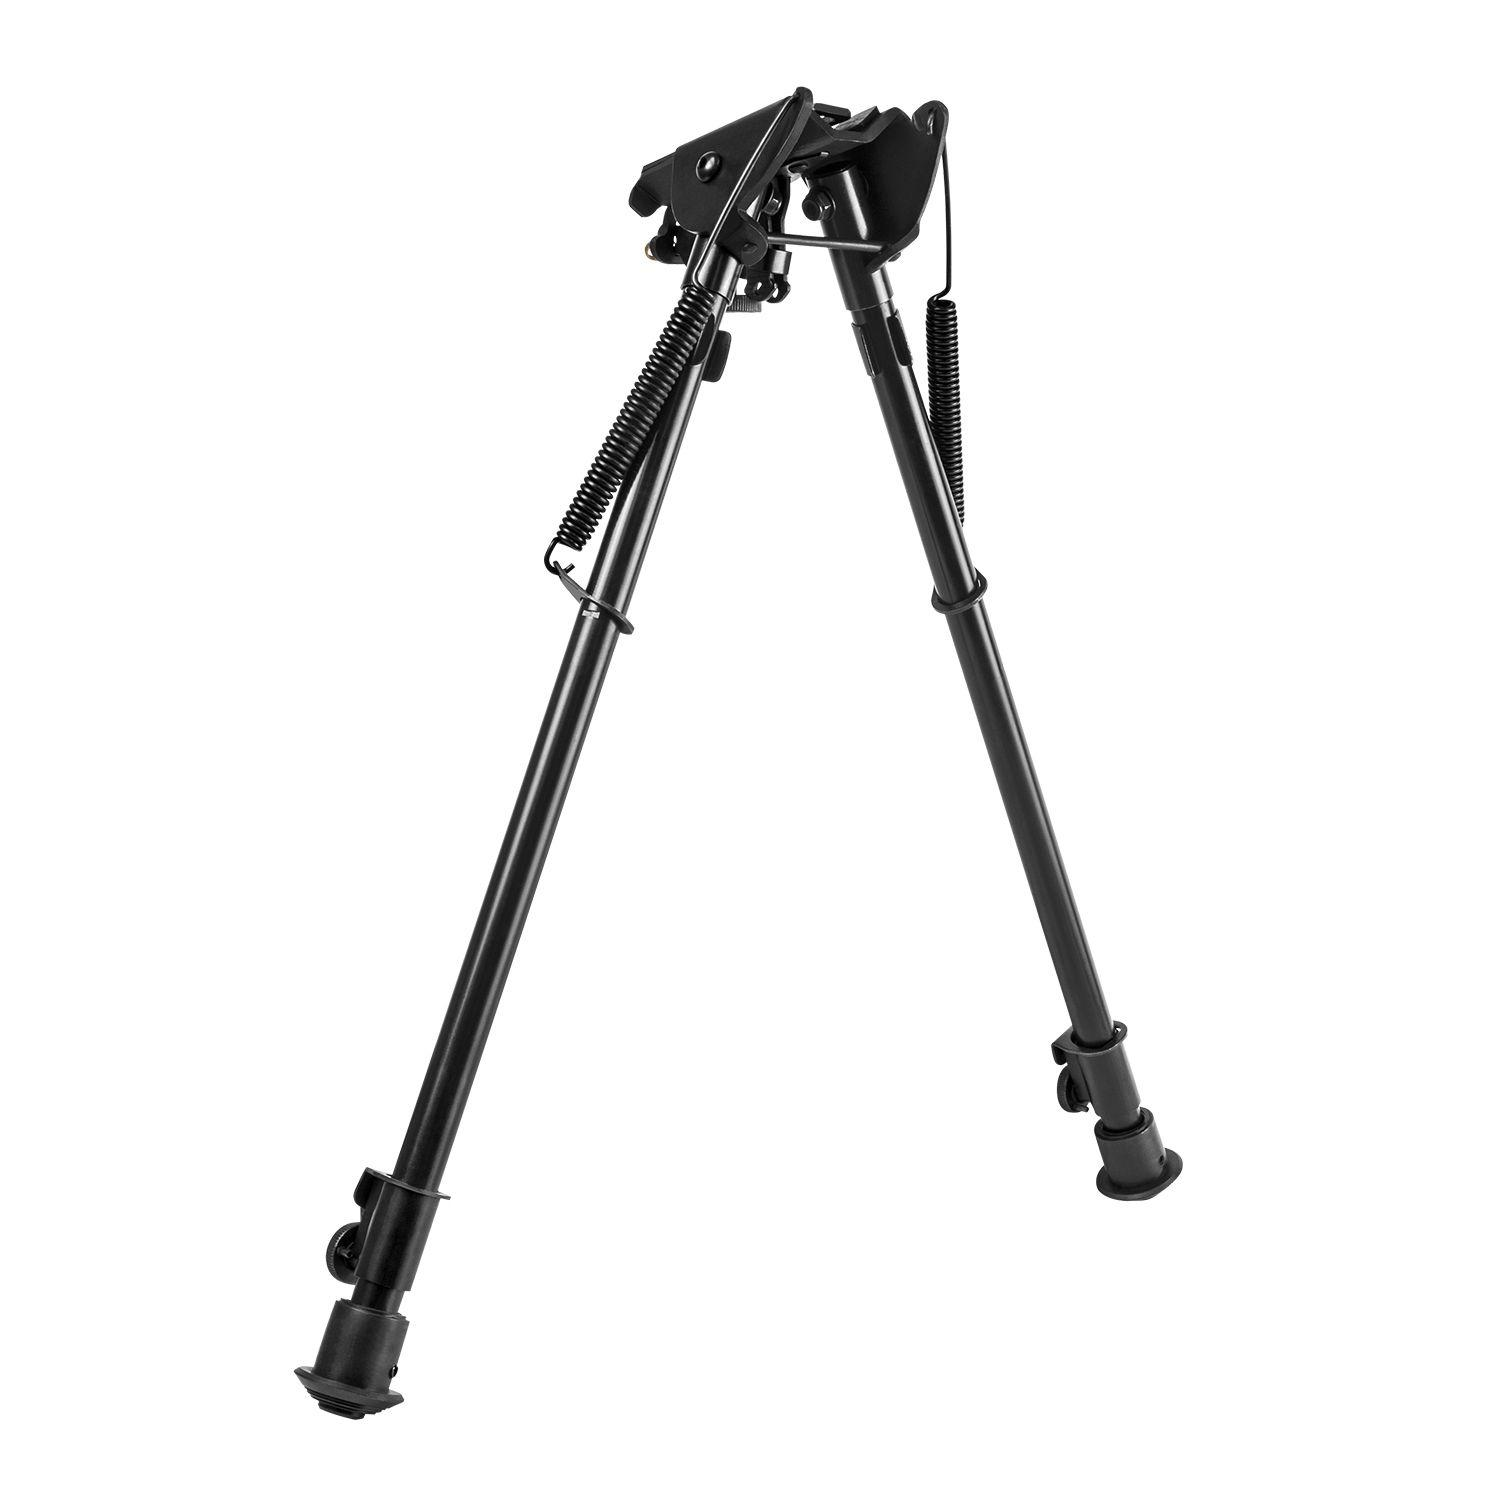 Buy Cheap Ncstar ABPGT Precision Grade Tall Bipod With 3